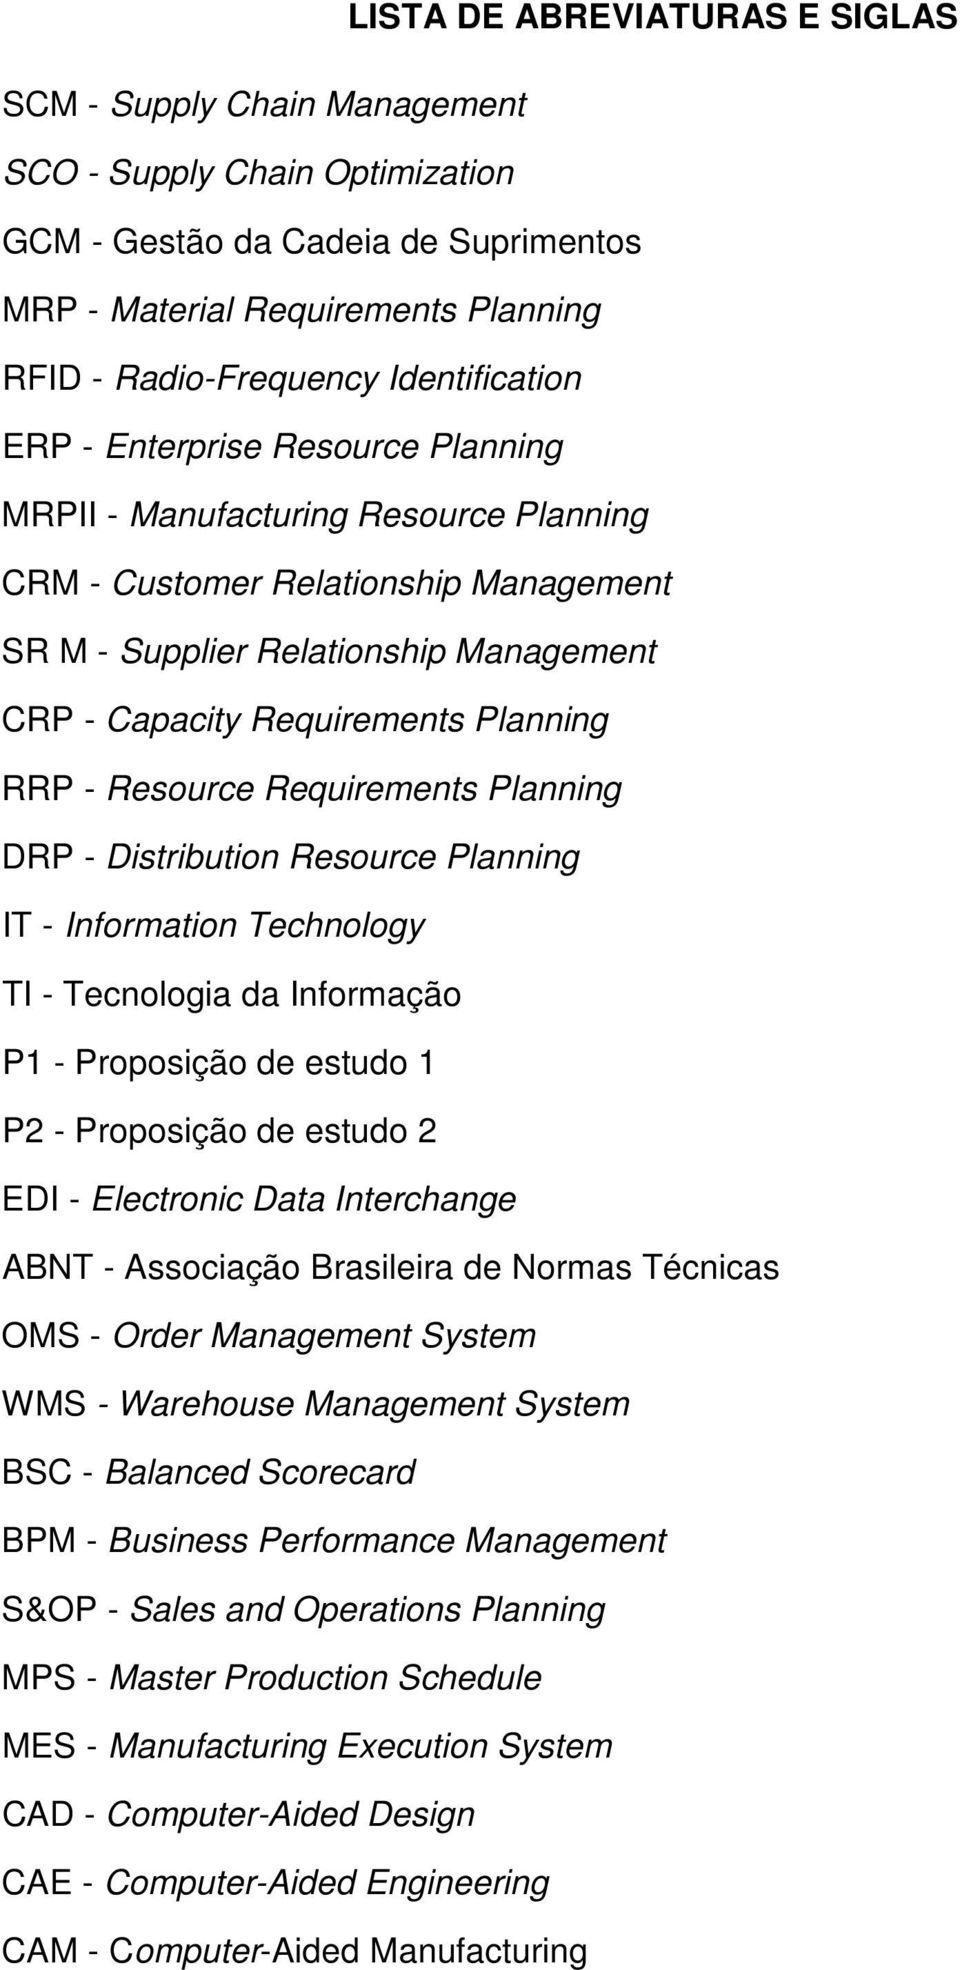 Planning RRP - Resource Requirements Planning DRP - Distribution Resource Planning IT - Information Technology TI - Tecnologia da Informação P1 - Proposição de estudo 1 P2 - Proposição de estudo 2